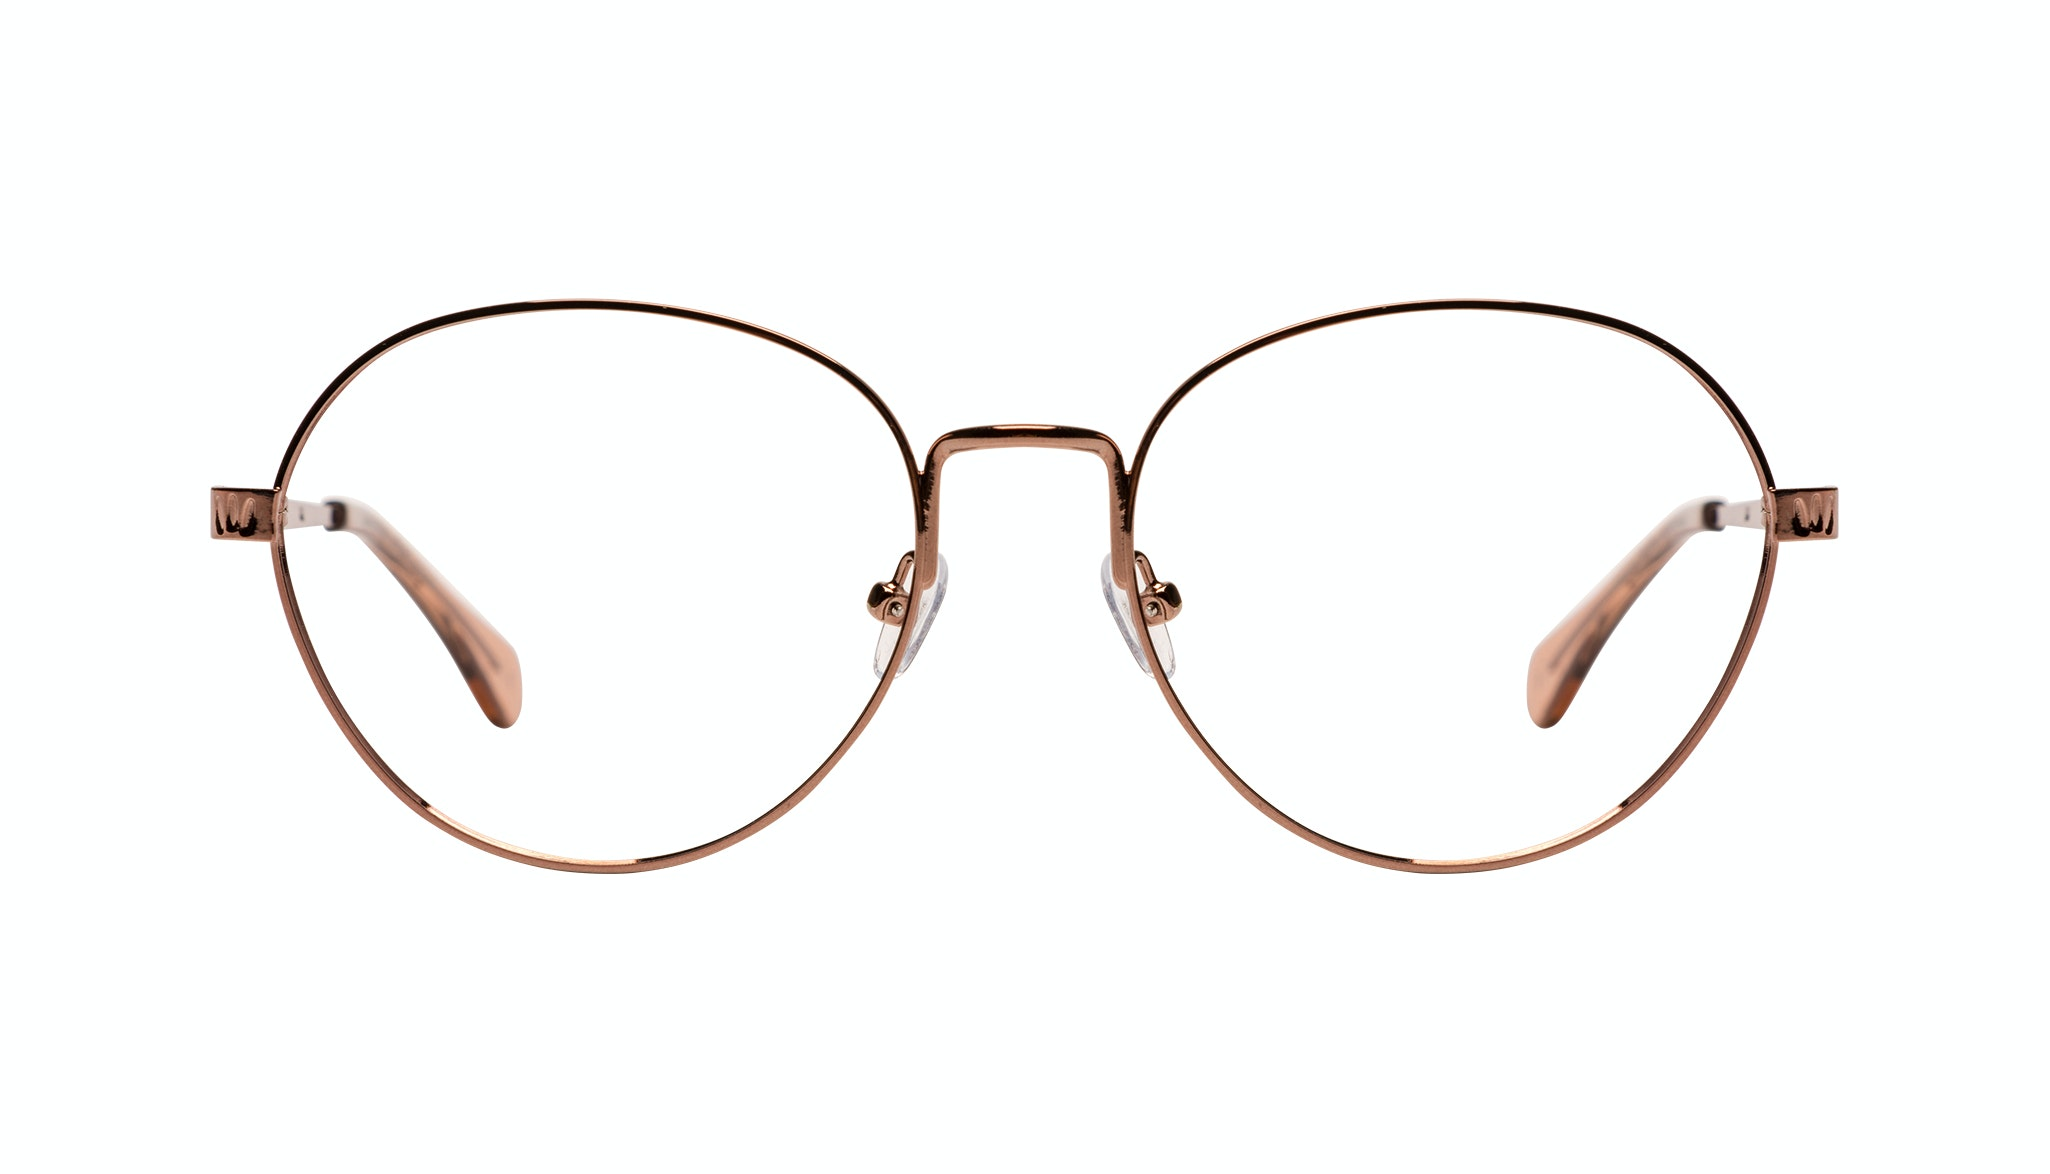 Affordable Fashion Glasses Round Eyeglasses Women Brace Plus Rose Gold Front